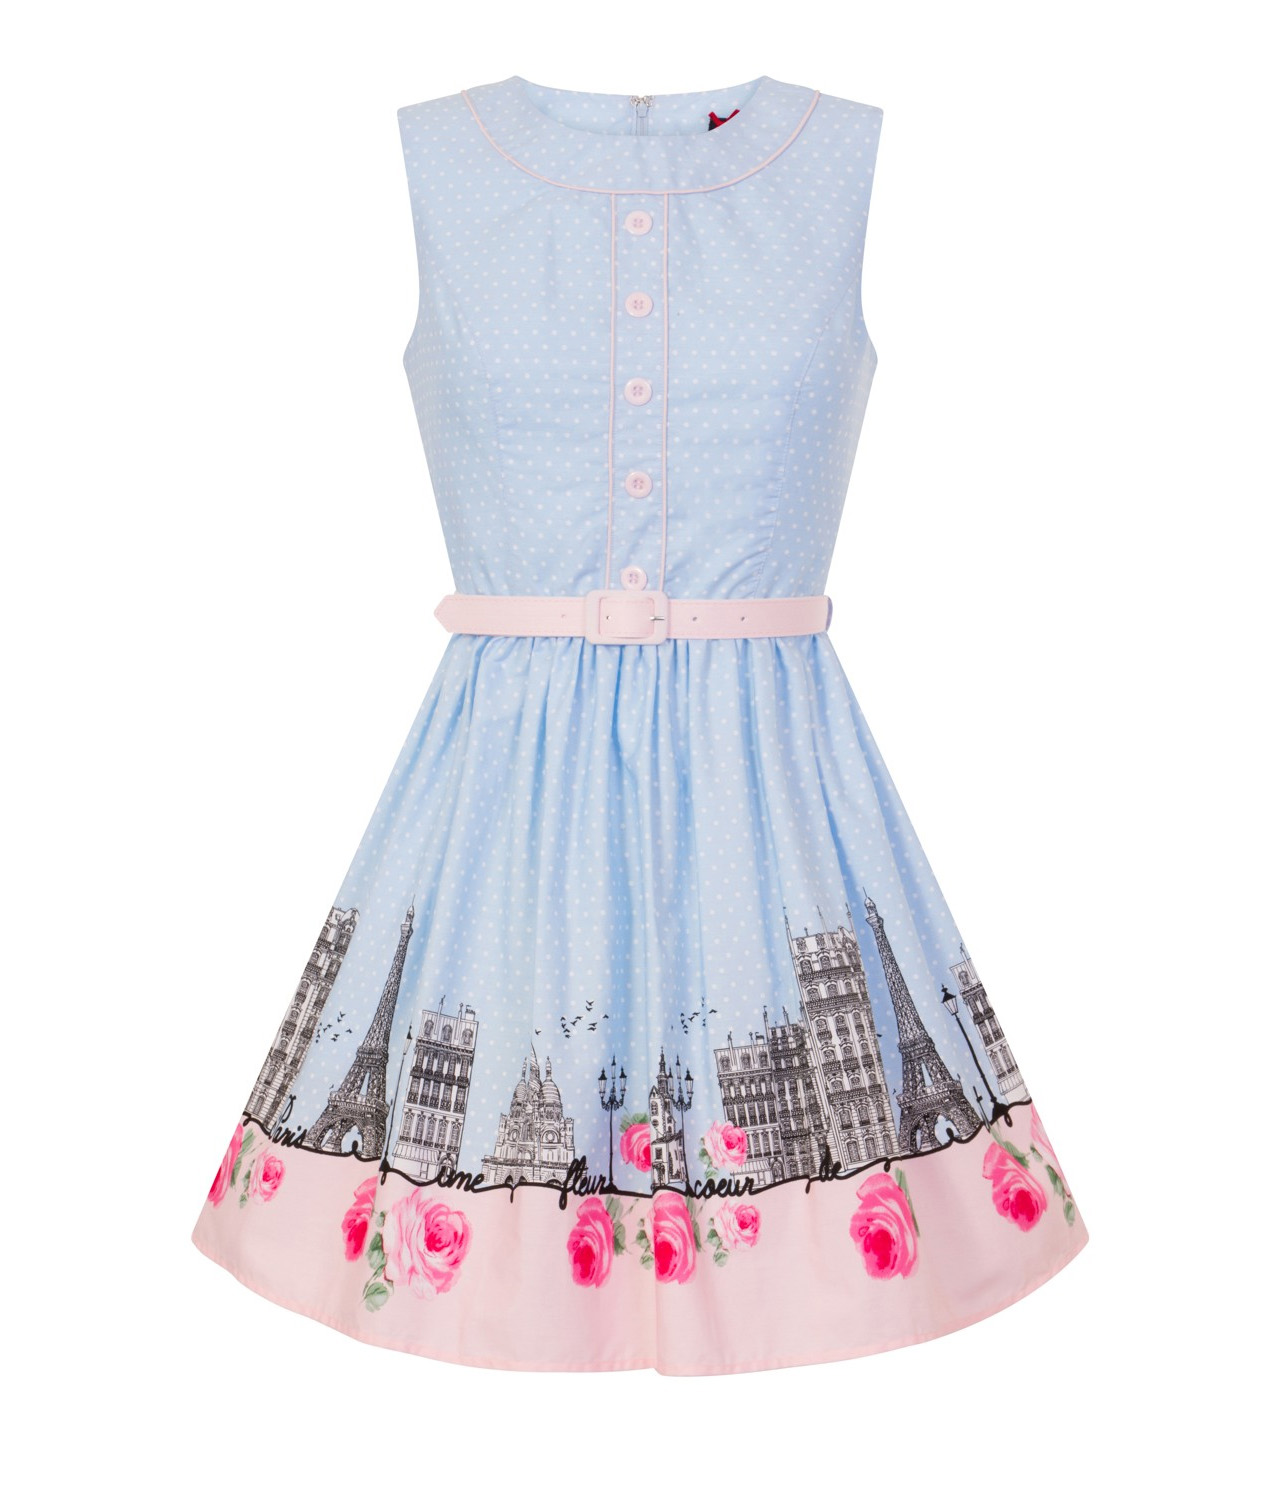 Hell-Bunny-50s-Vintage-Blue-Polka-Dot-PANAME-Mini-Dress-Paris-All-Sizes thumbnail 35